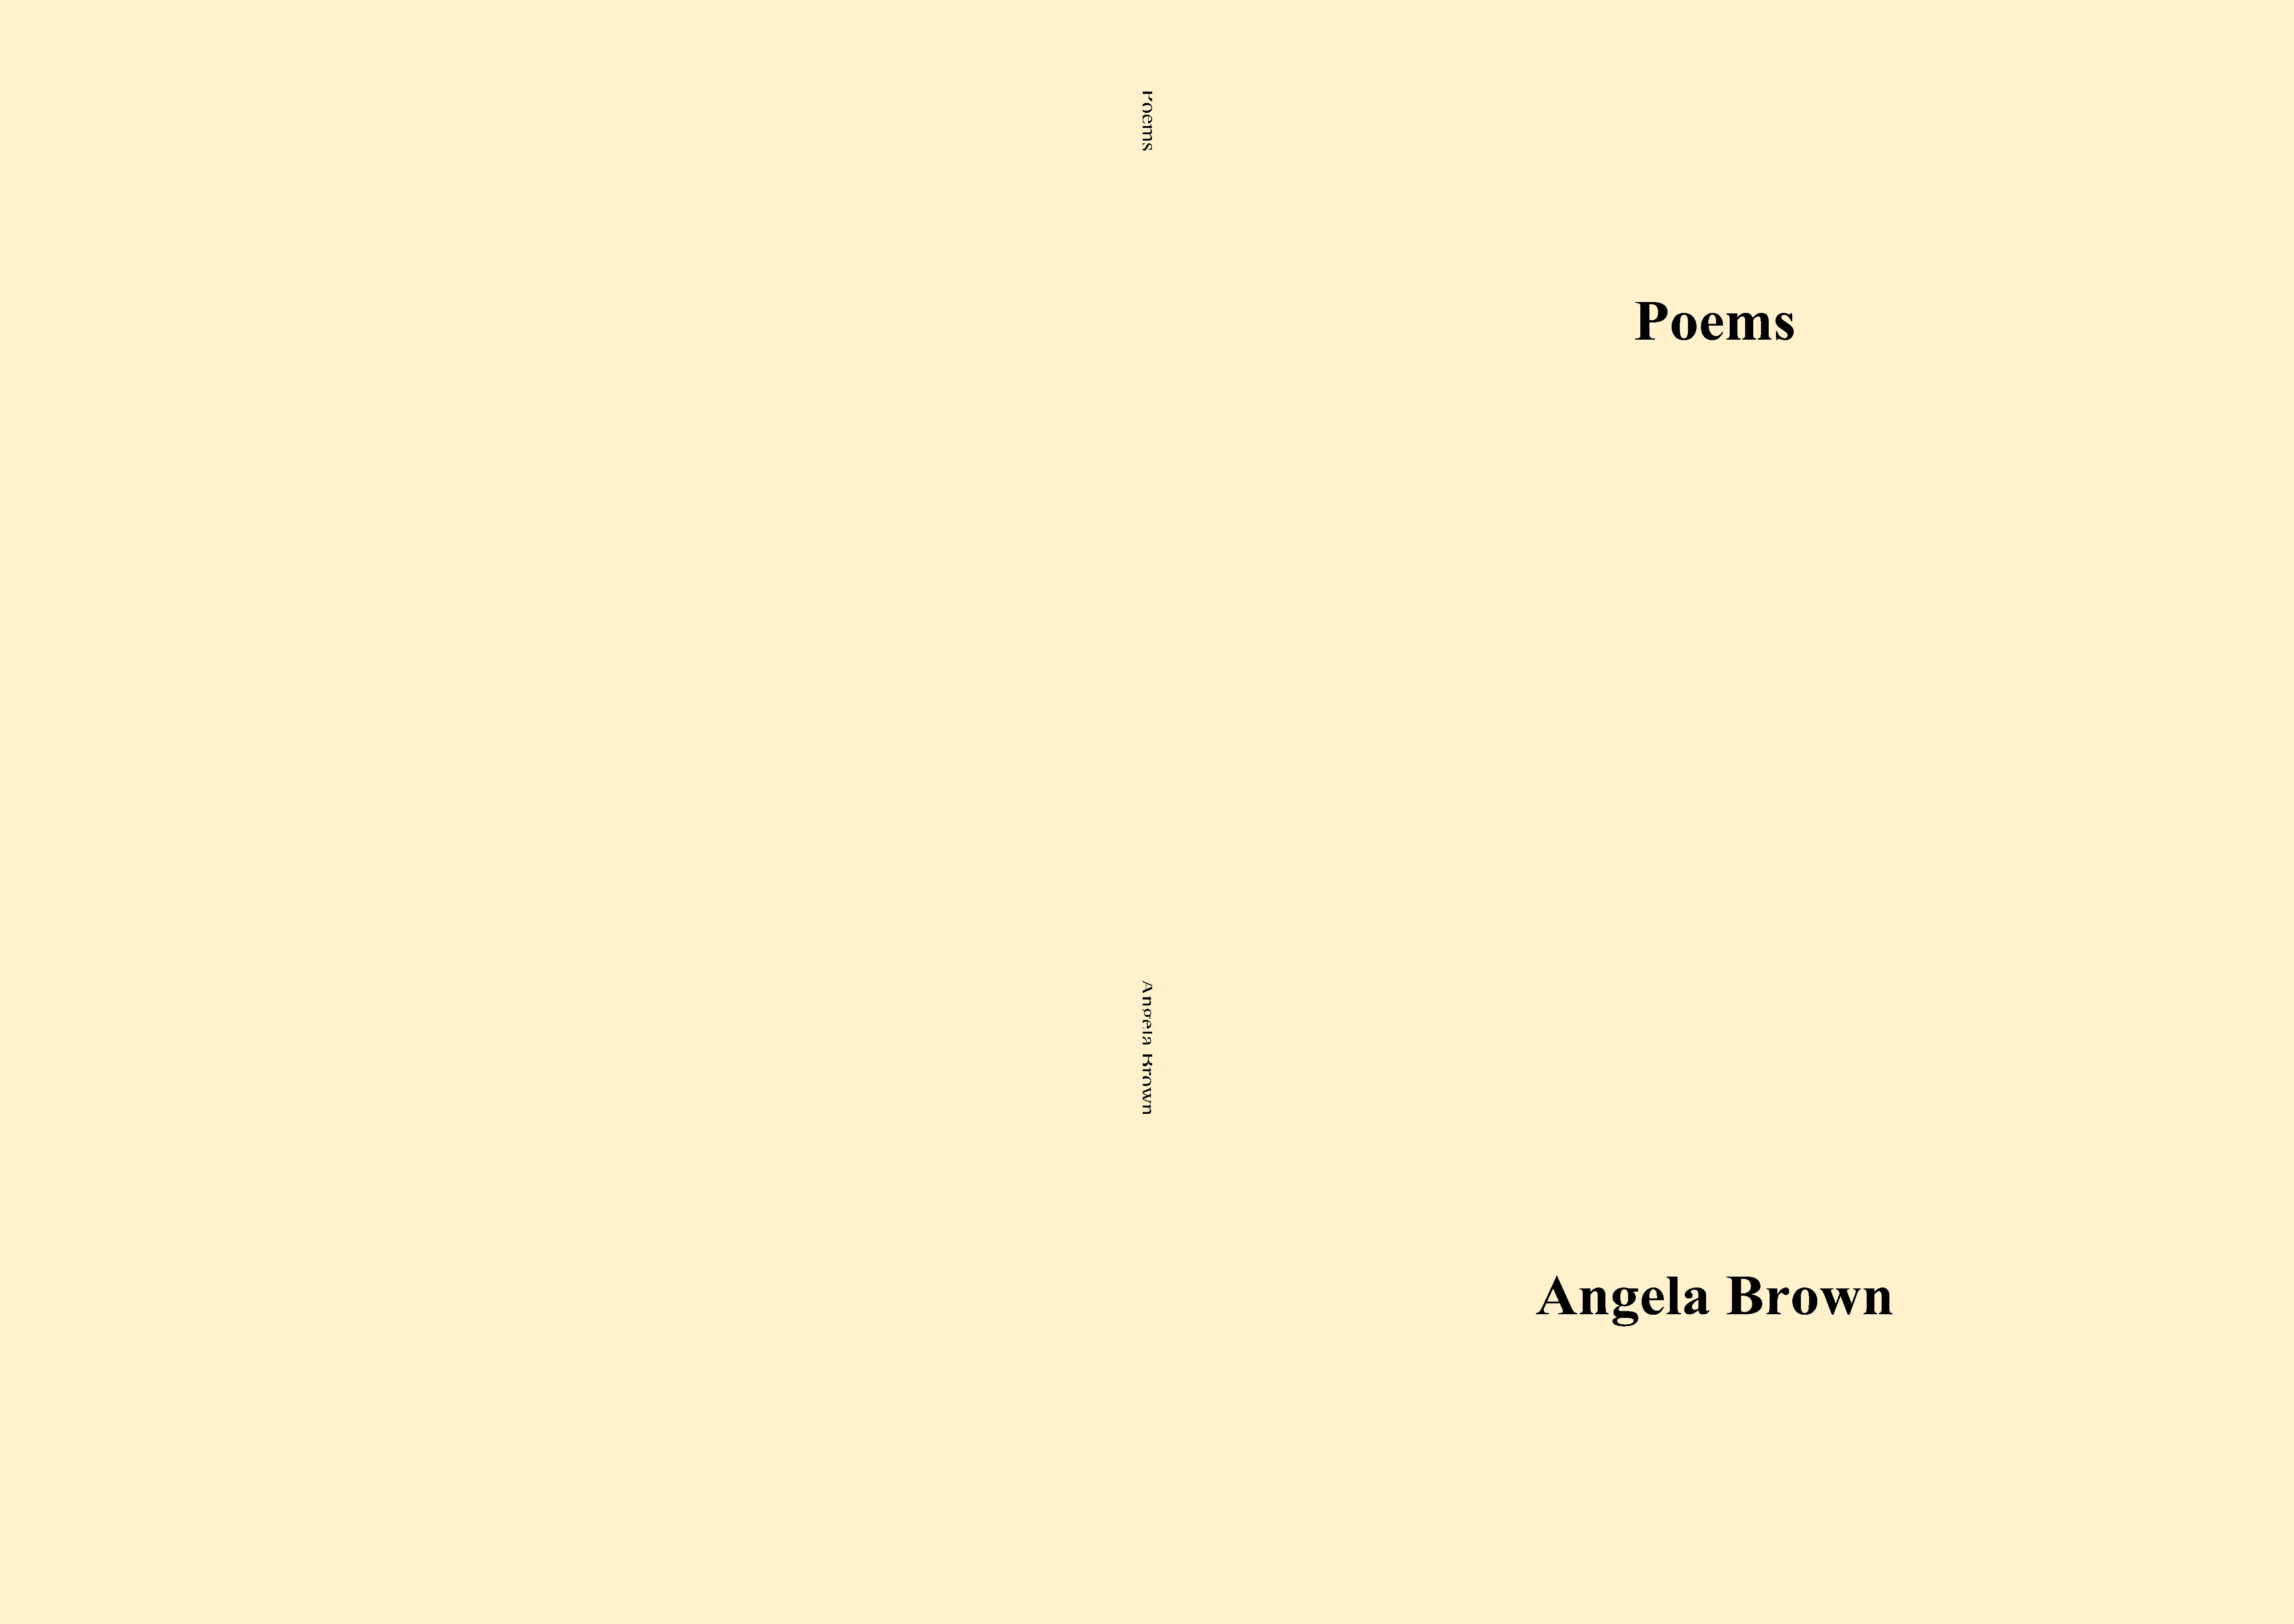 Poems cover image